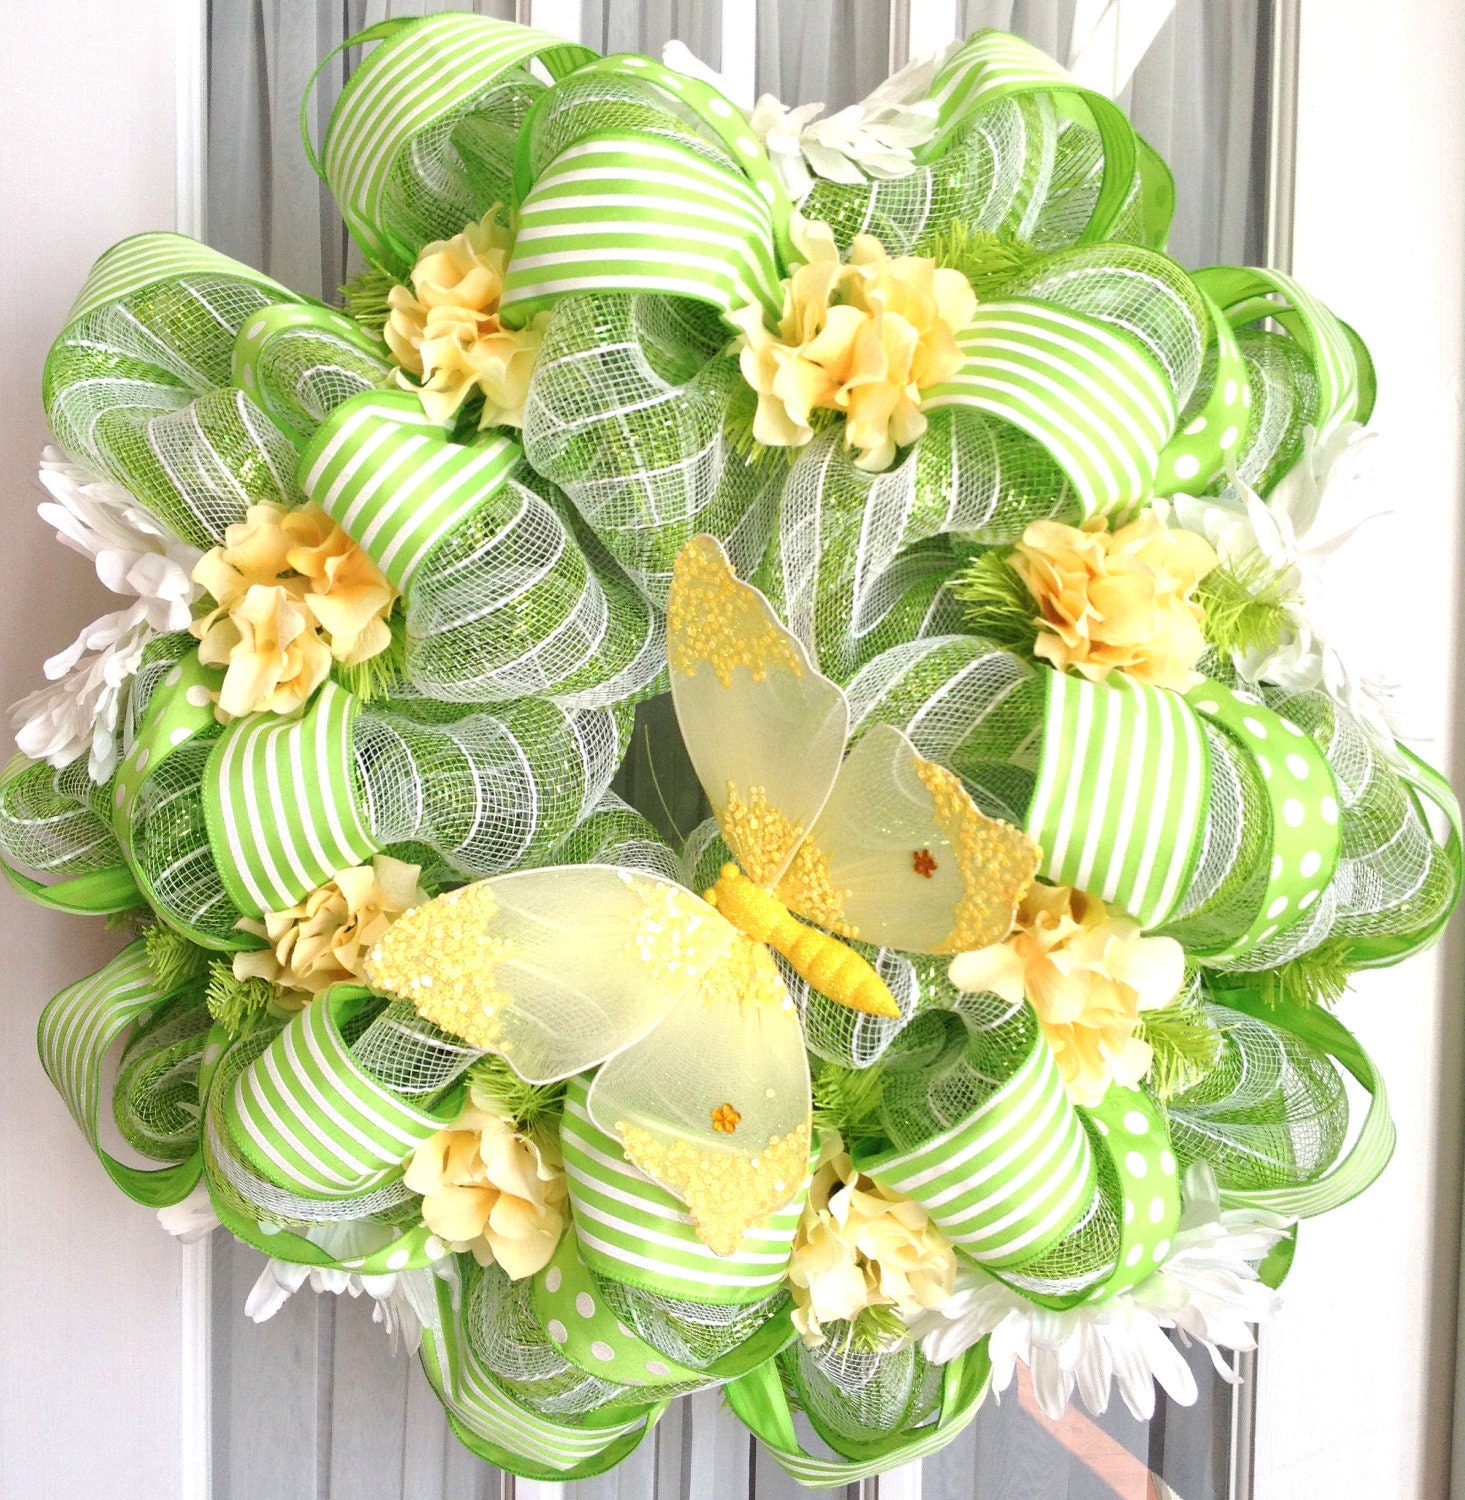 Fall decorating ideas for mantle - Spring Summer Mesh Wreath Lime Green White Stripes